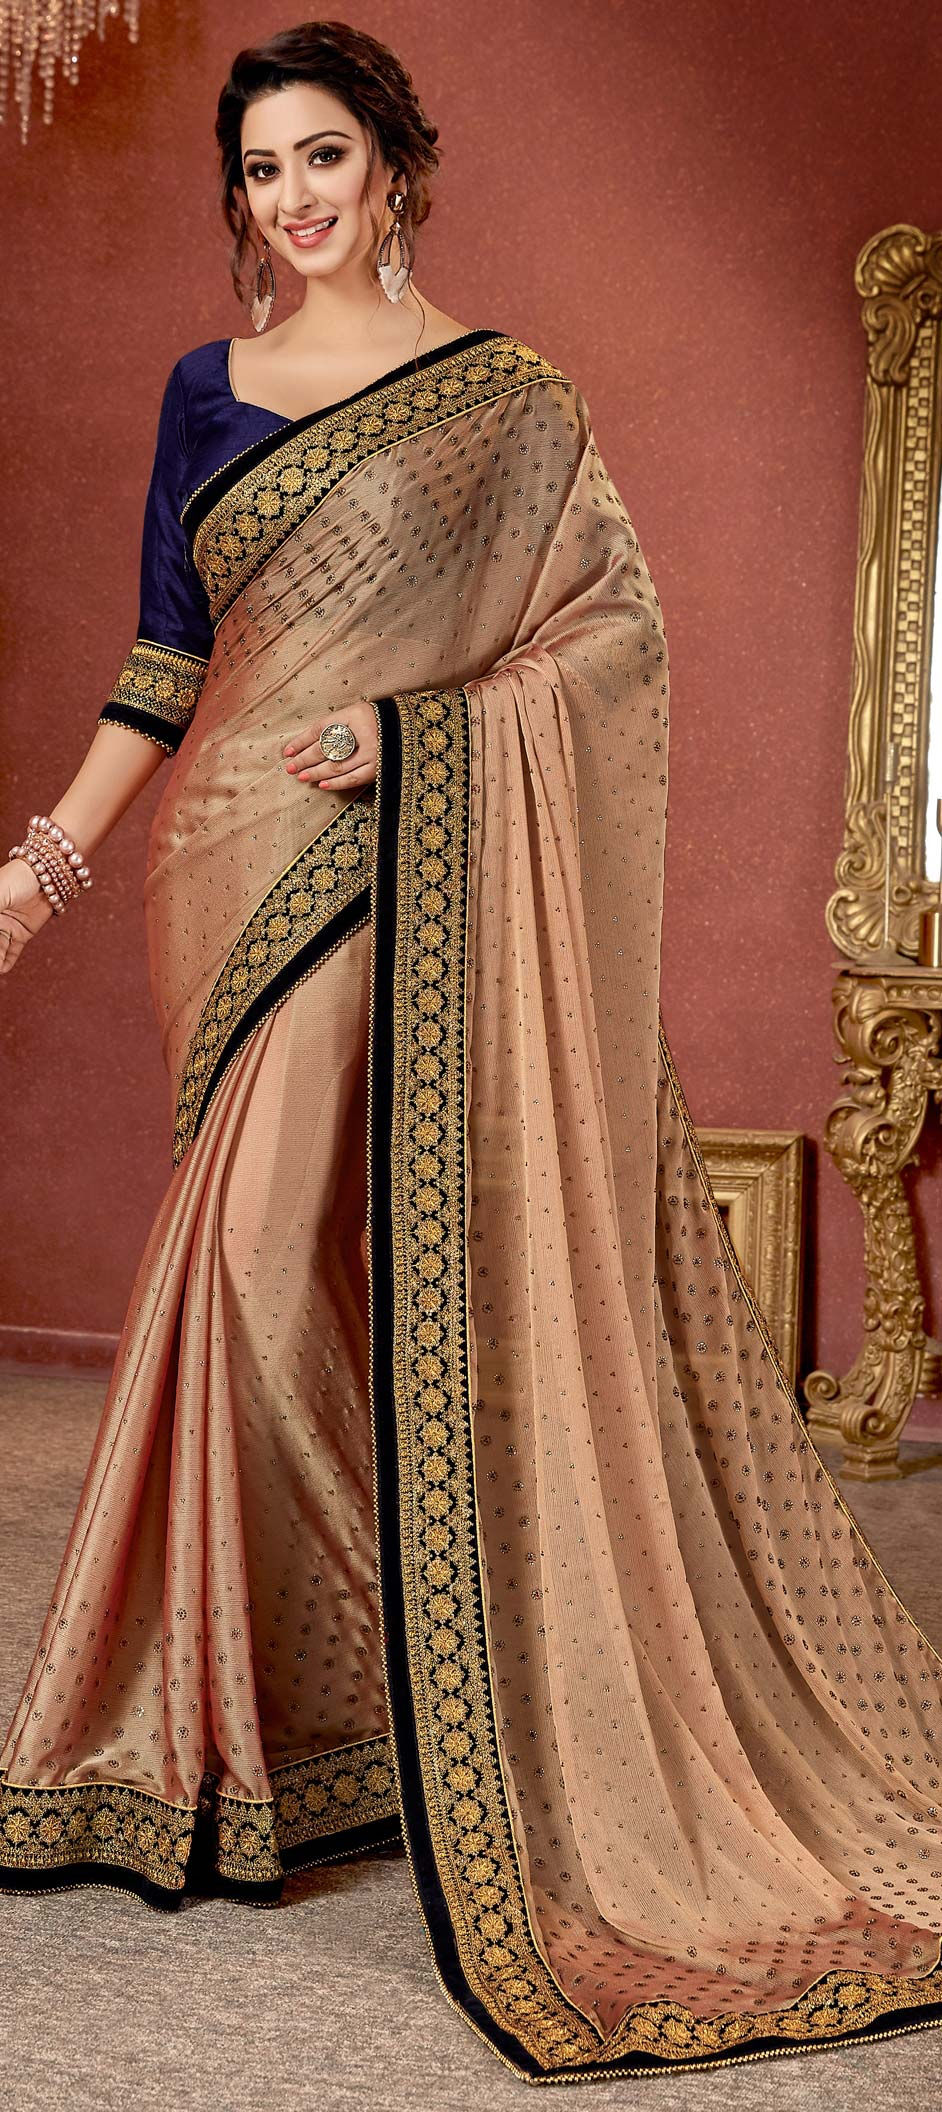 Chiffon Bollywood Saree in Pink and Majenta with Stone work